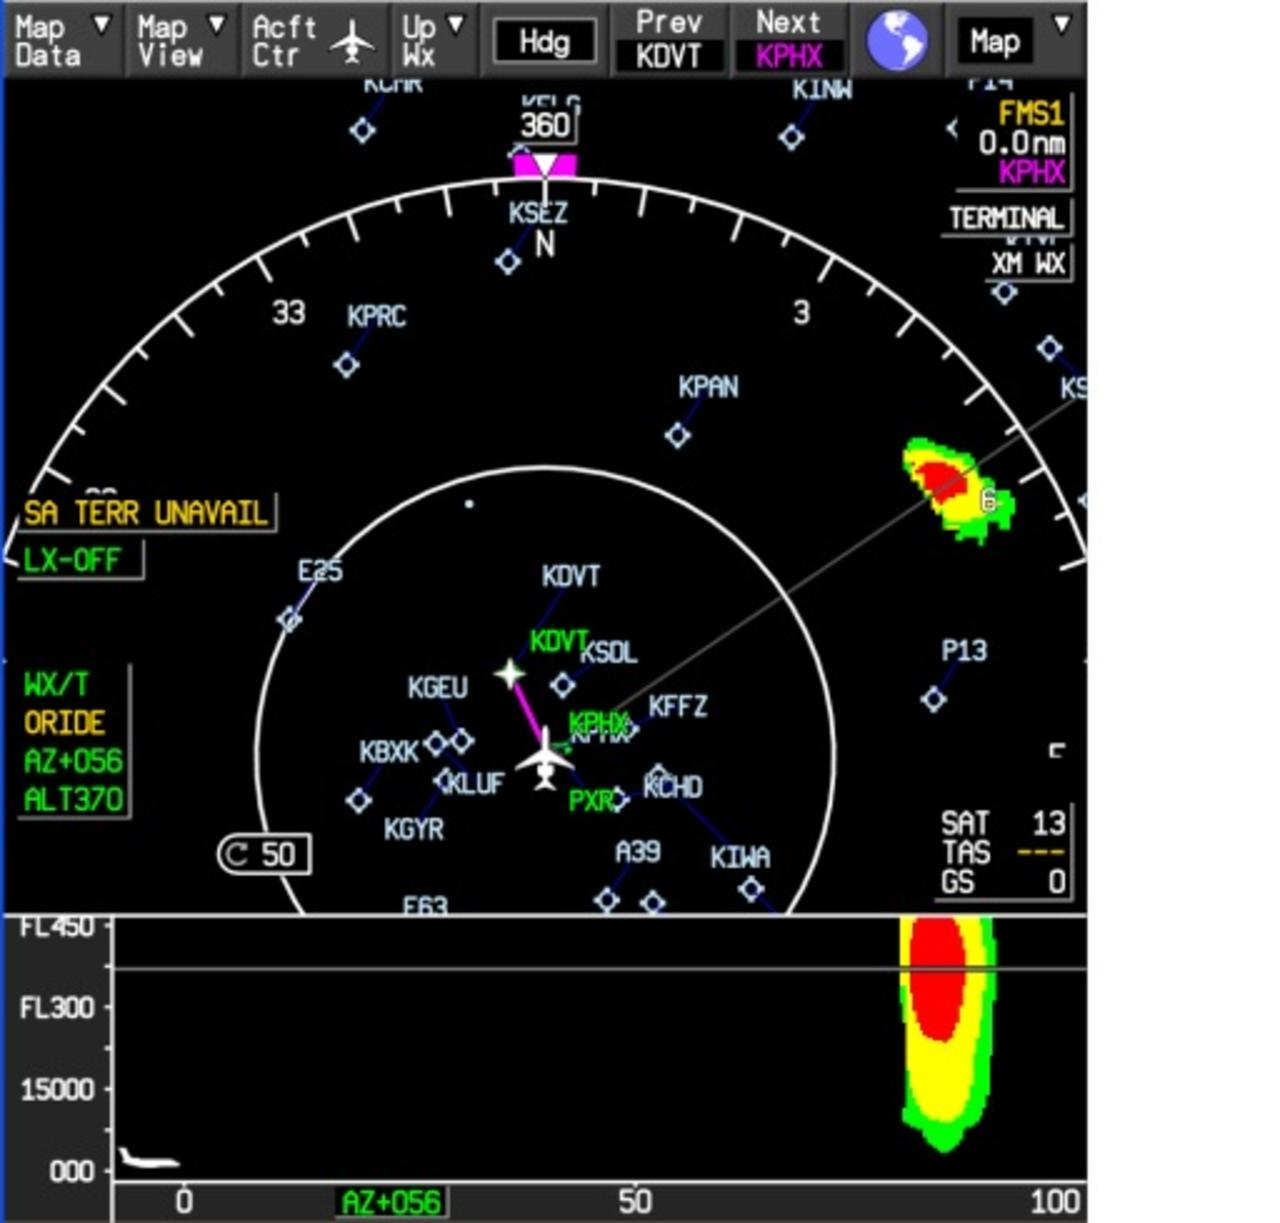 Gca Link April 2017 Aircraft Weather Observation Tech Enters Iot